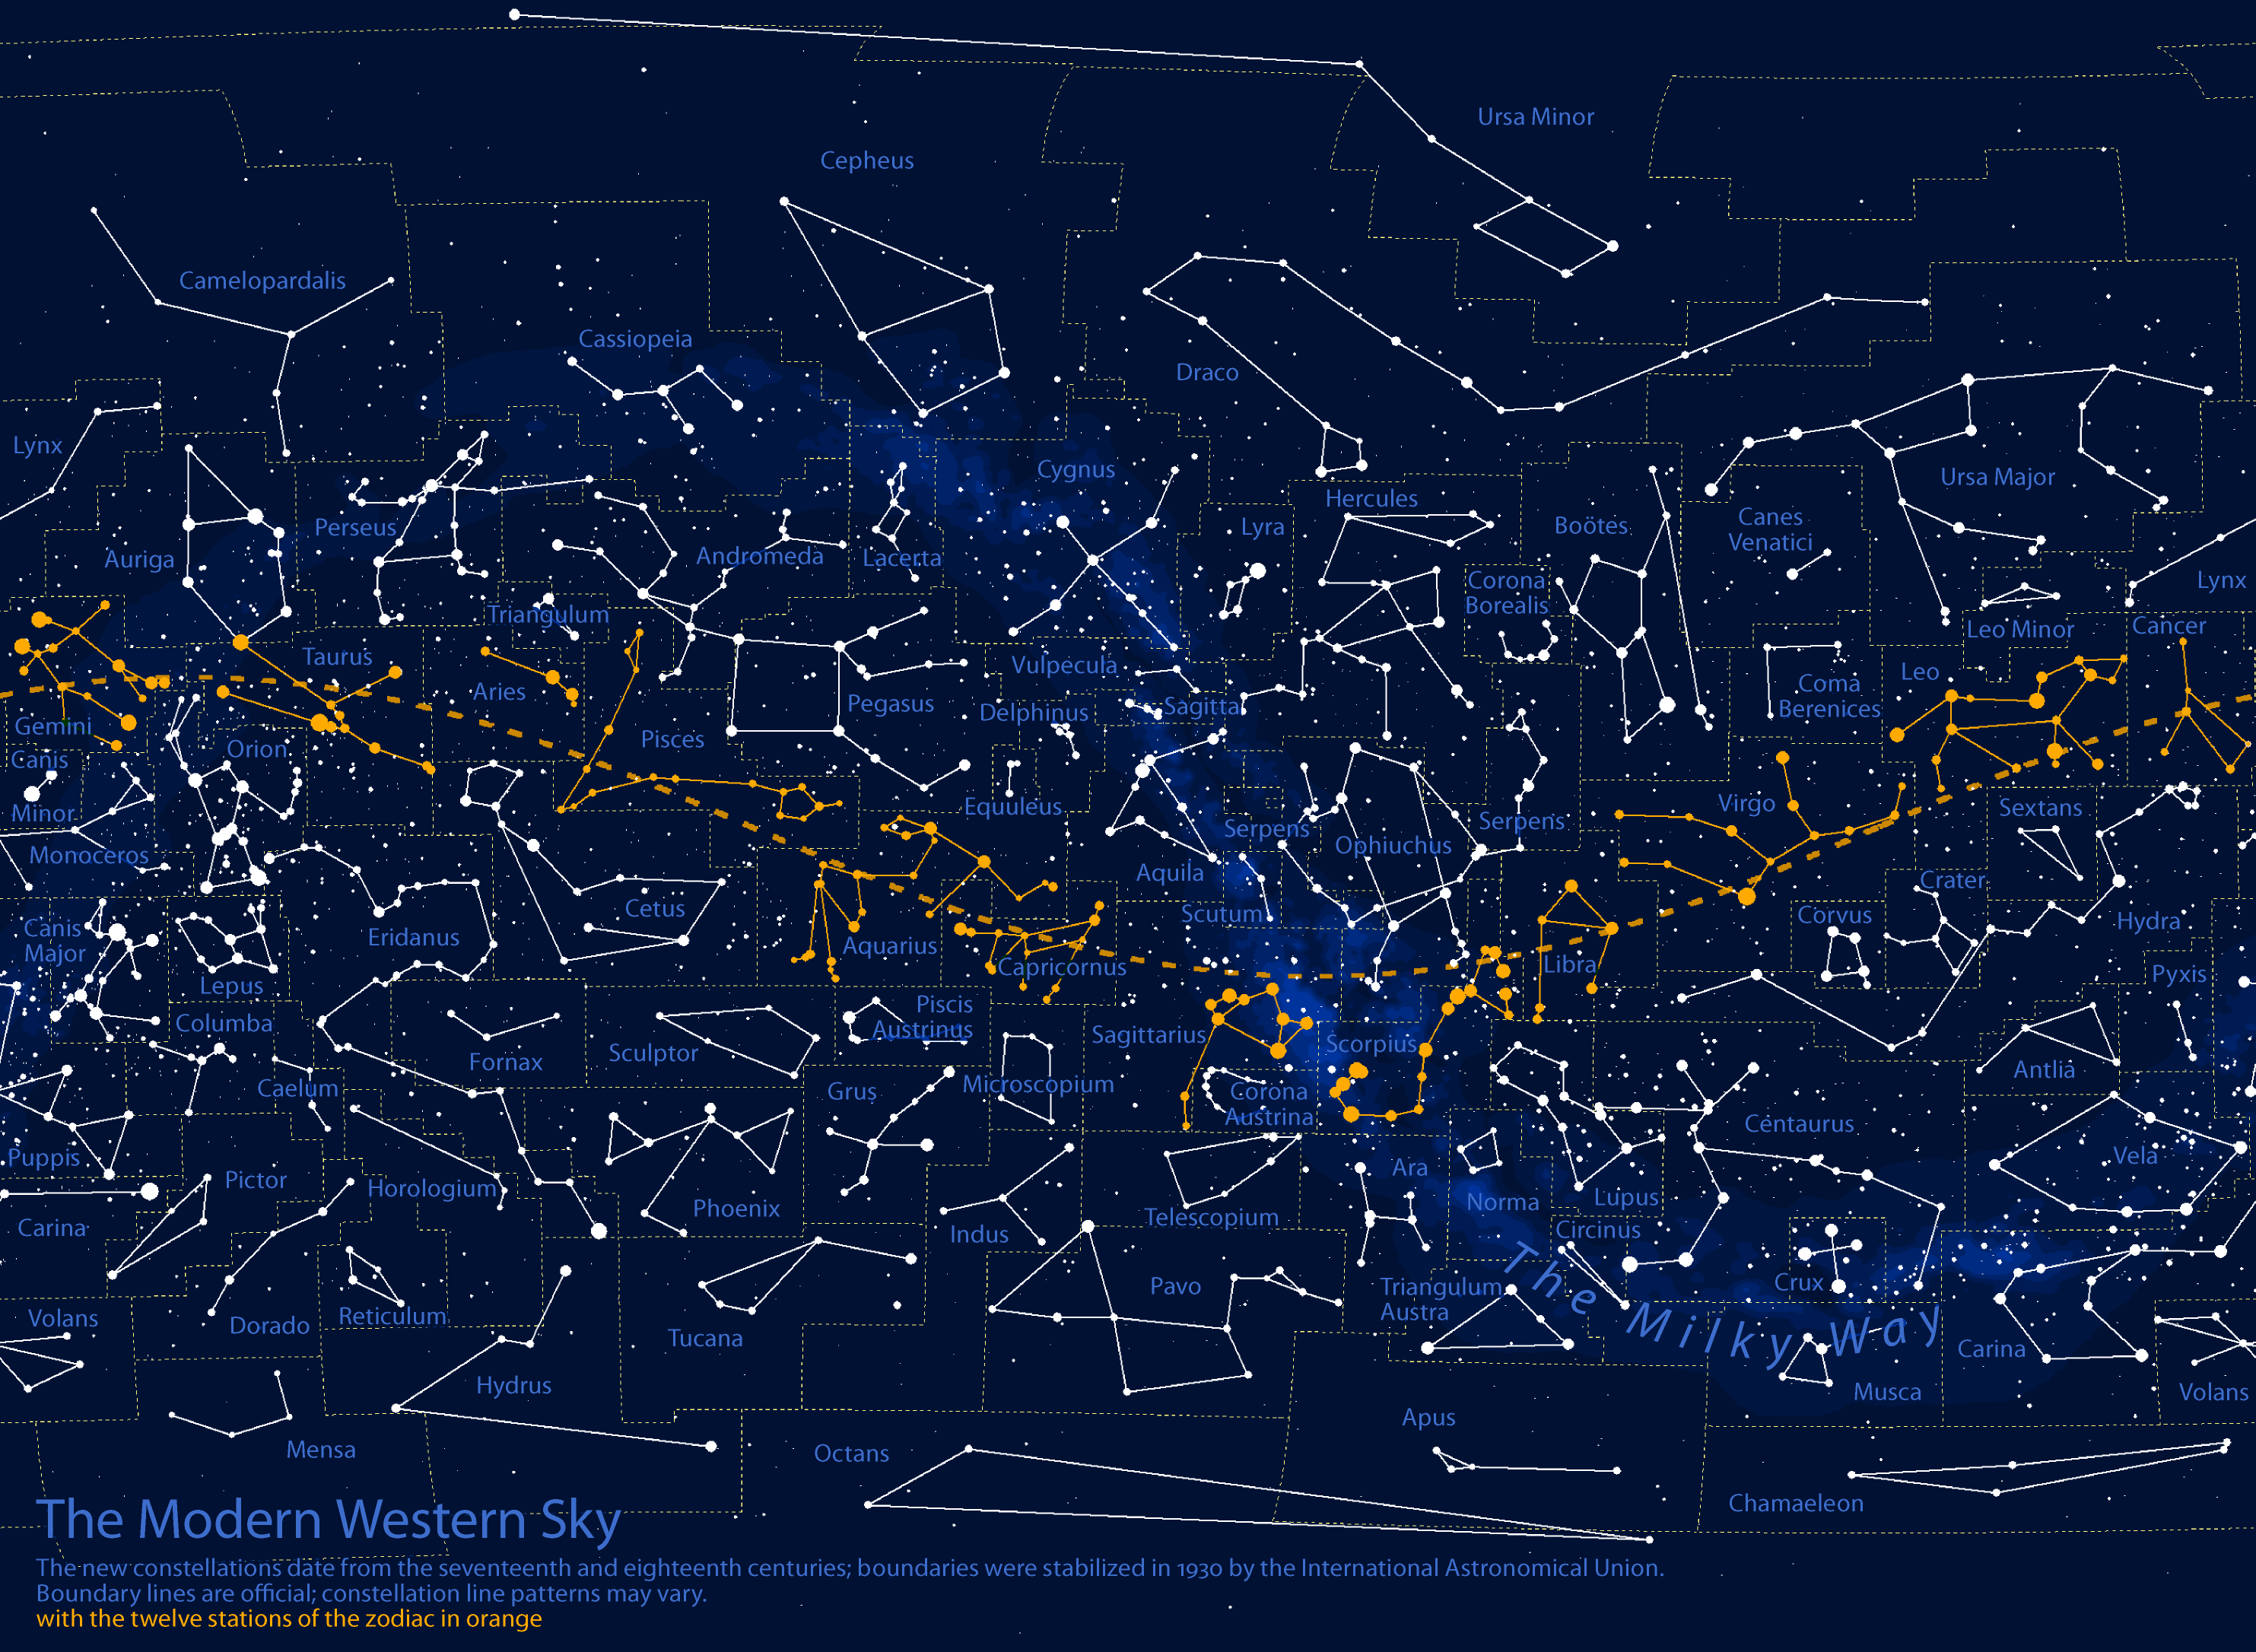 Radicalcartography - Night sky map northern hemisphere